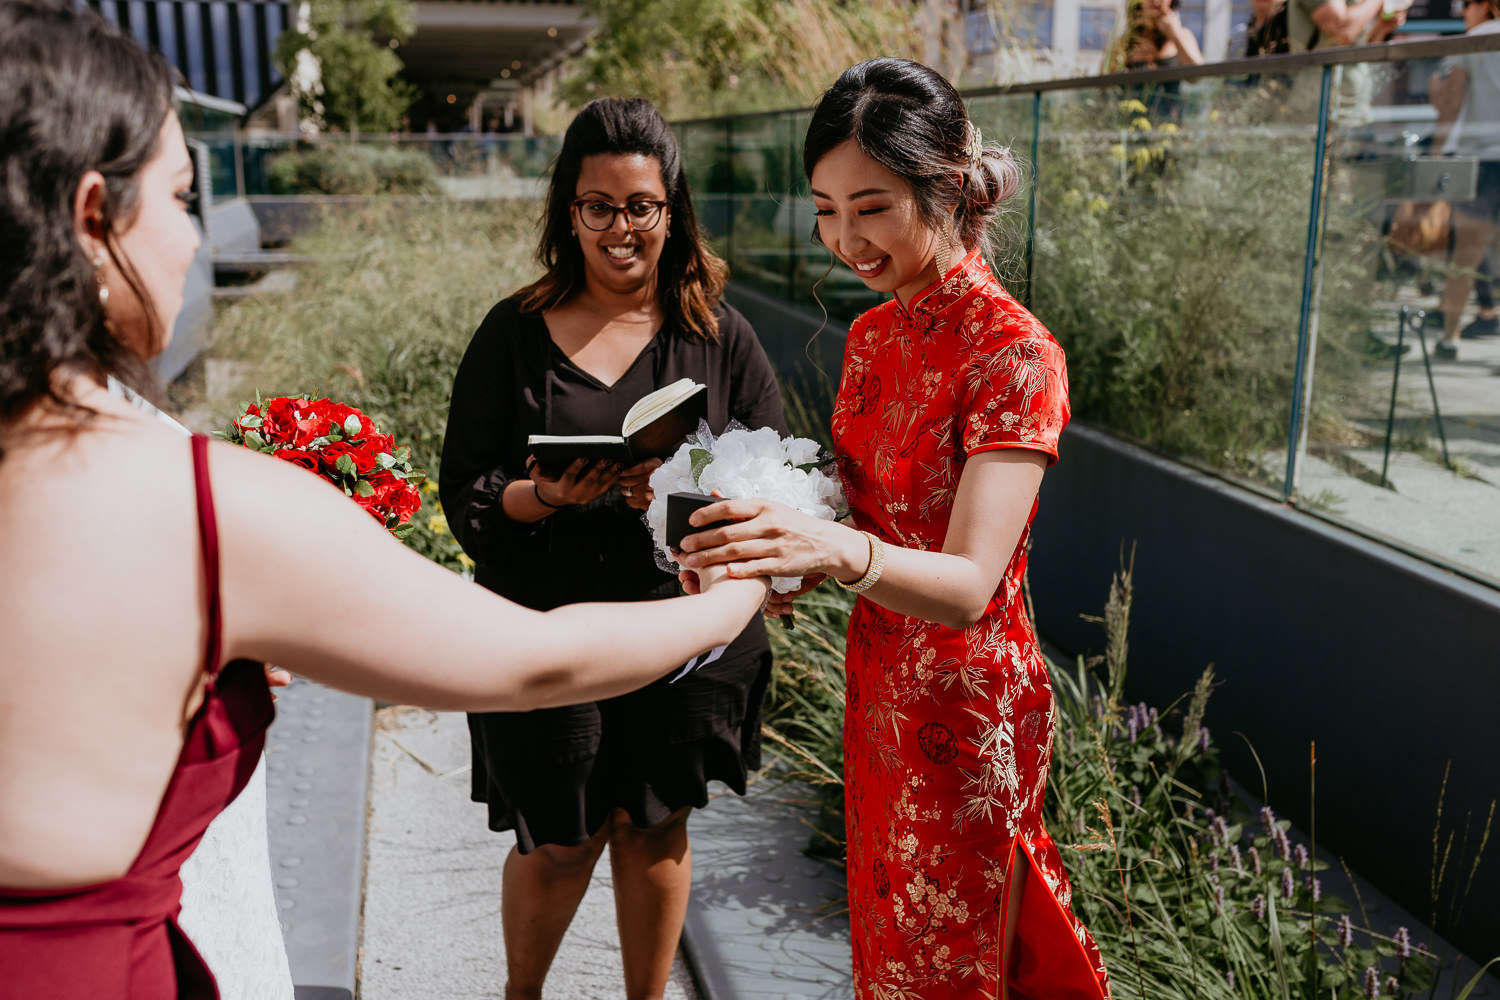 rings being handed to bride in red Chinese wedding dress